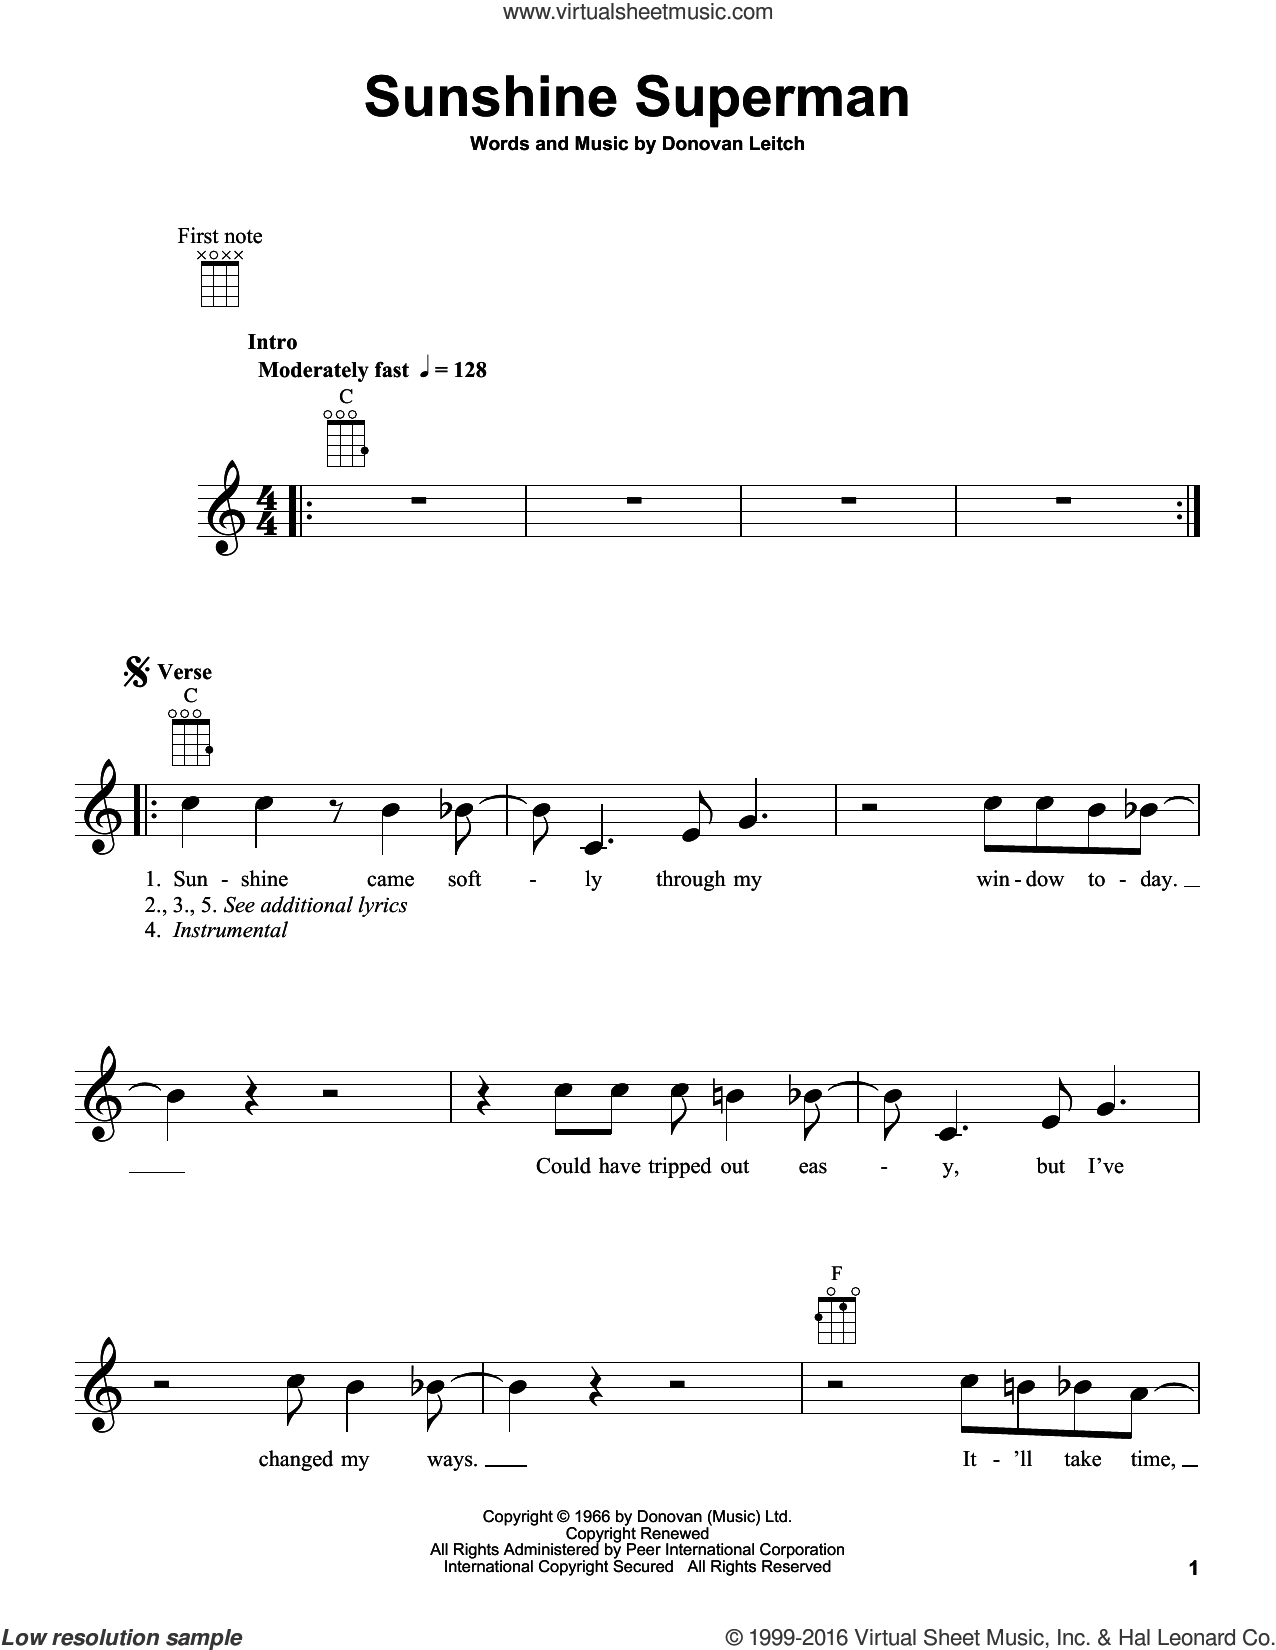 Sunshine Superman sheet music for ukulele by Walter Donovan and Donovan Leitch, intermediate skill level